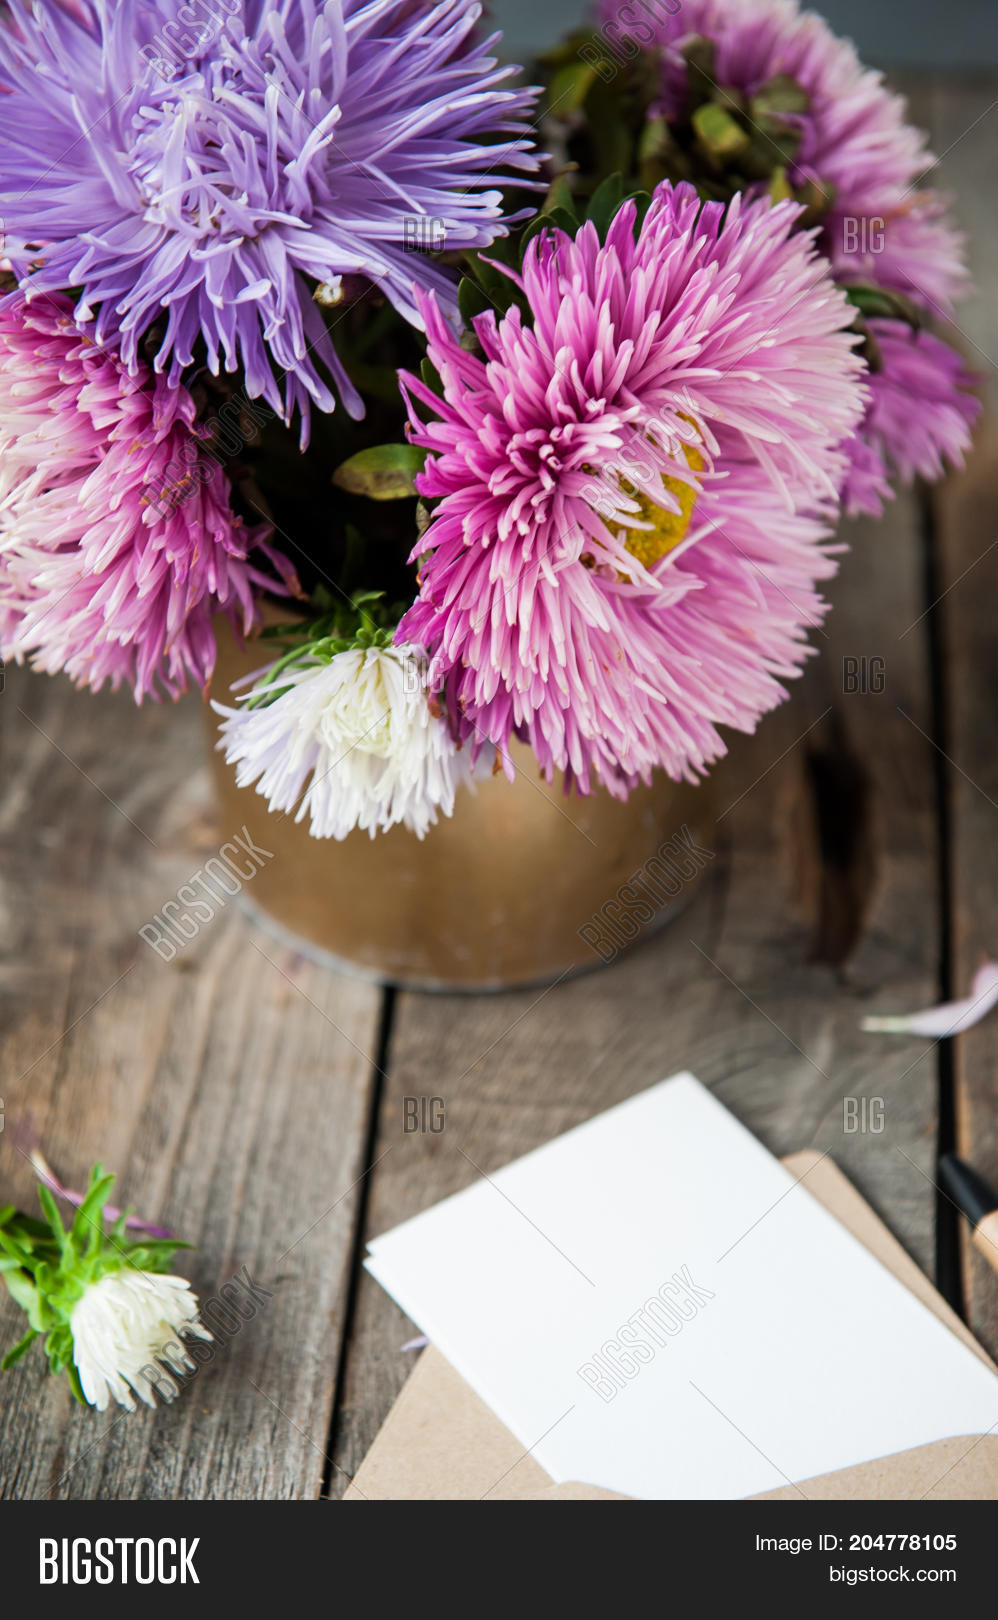 Multicolor aster image photo free trial bigstock multicolor aster flowers bouquet blank white greeting card and craft paper envelope on rustic woode izmirmasajfo